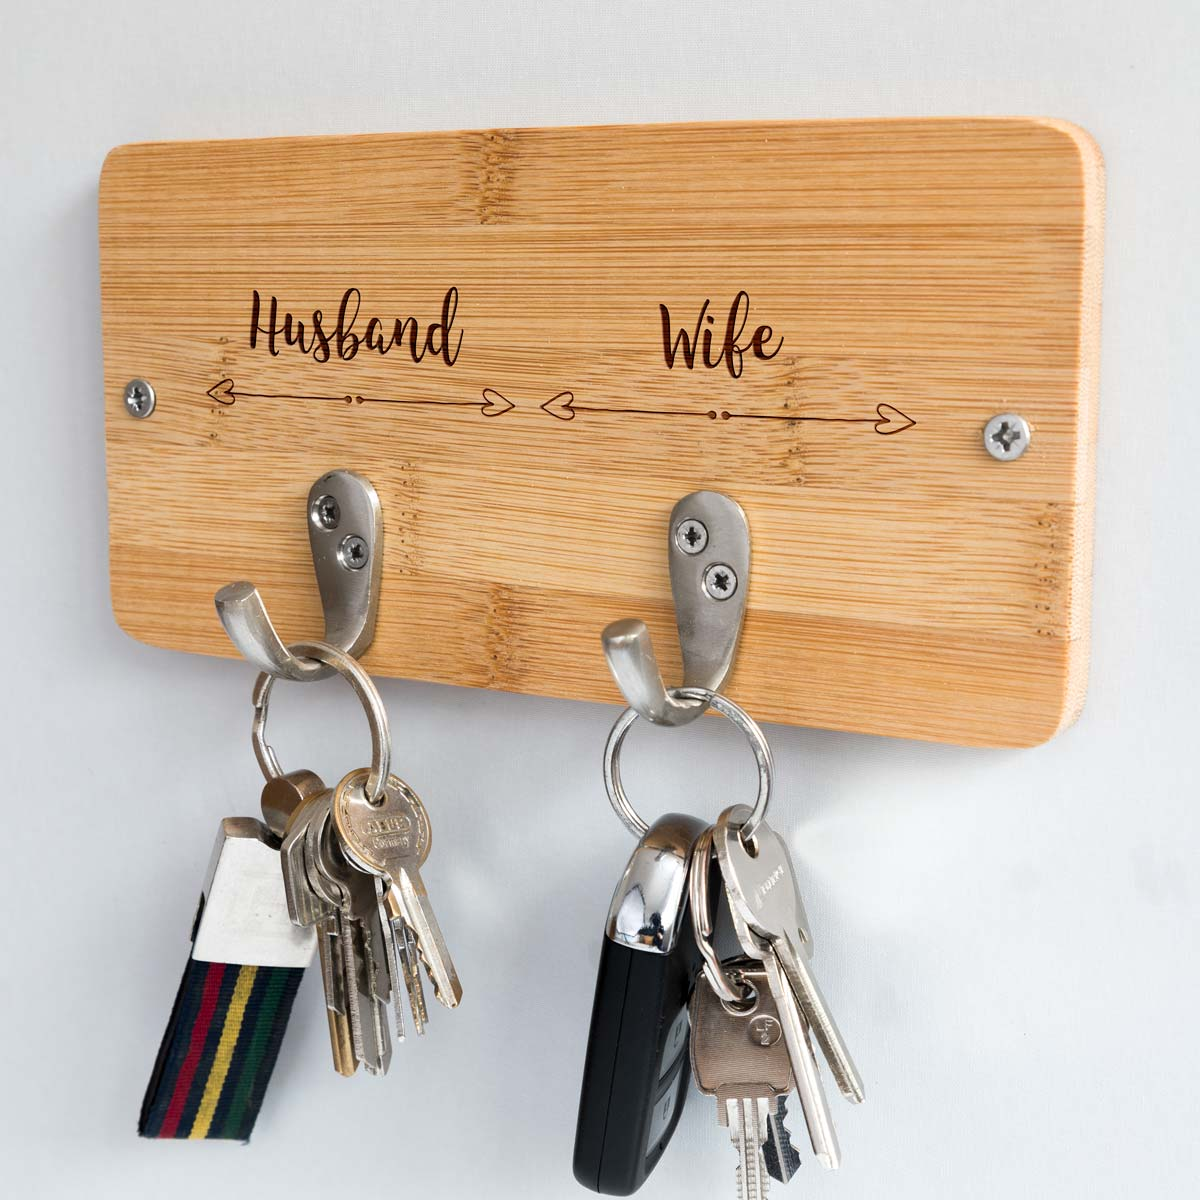 Husband & Wife Bamboo Key Hook Wedding Gift